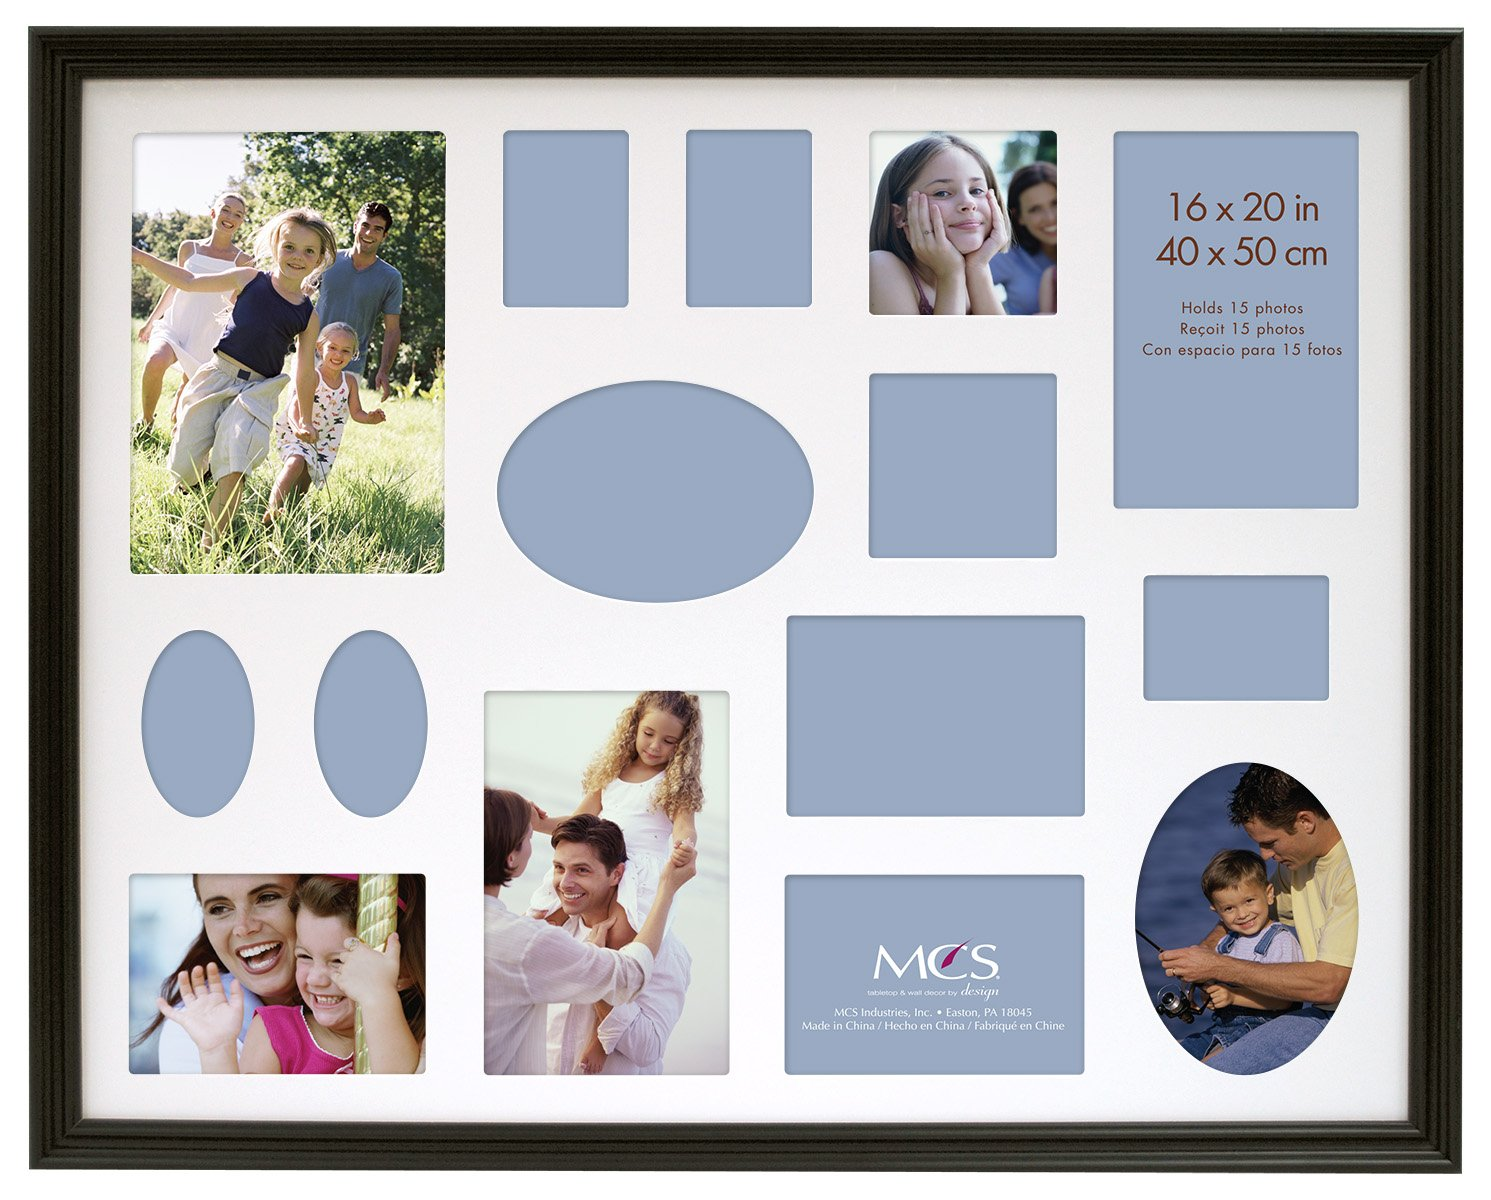 Amazon.com - MCS 16x20 Inch Traditional Wood Collage Frame, Black ...